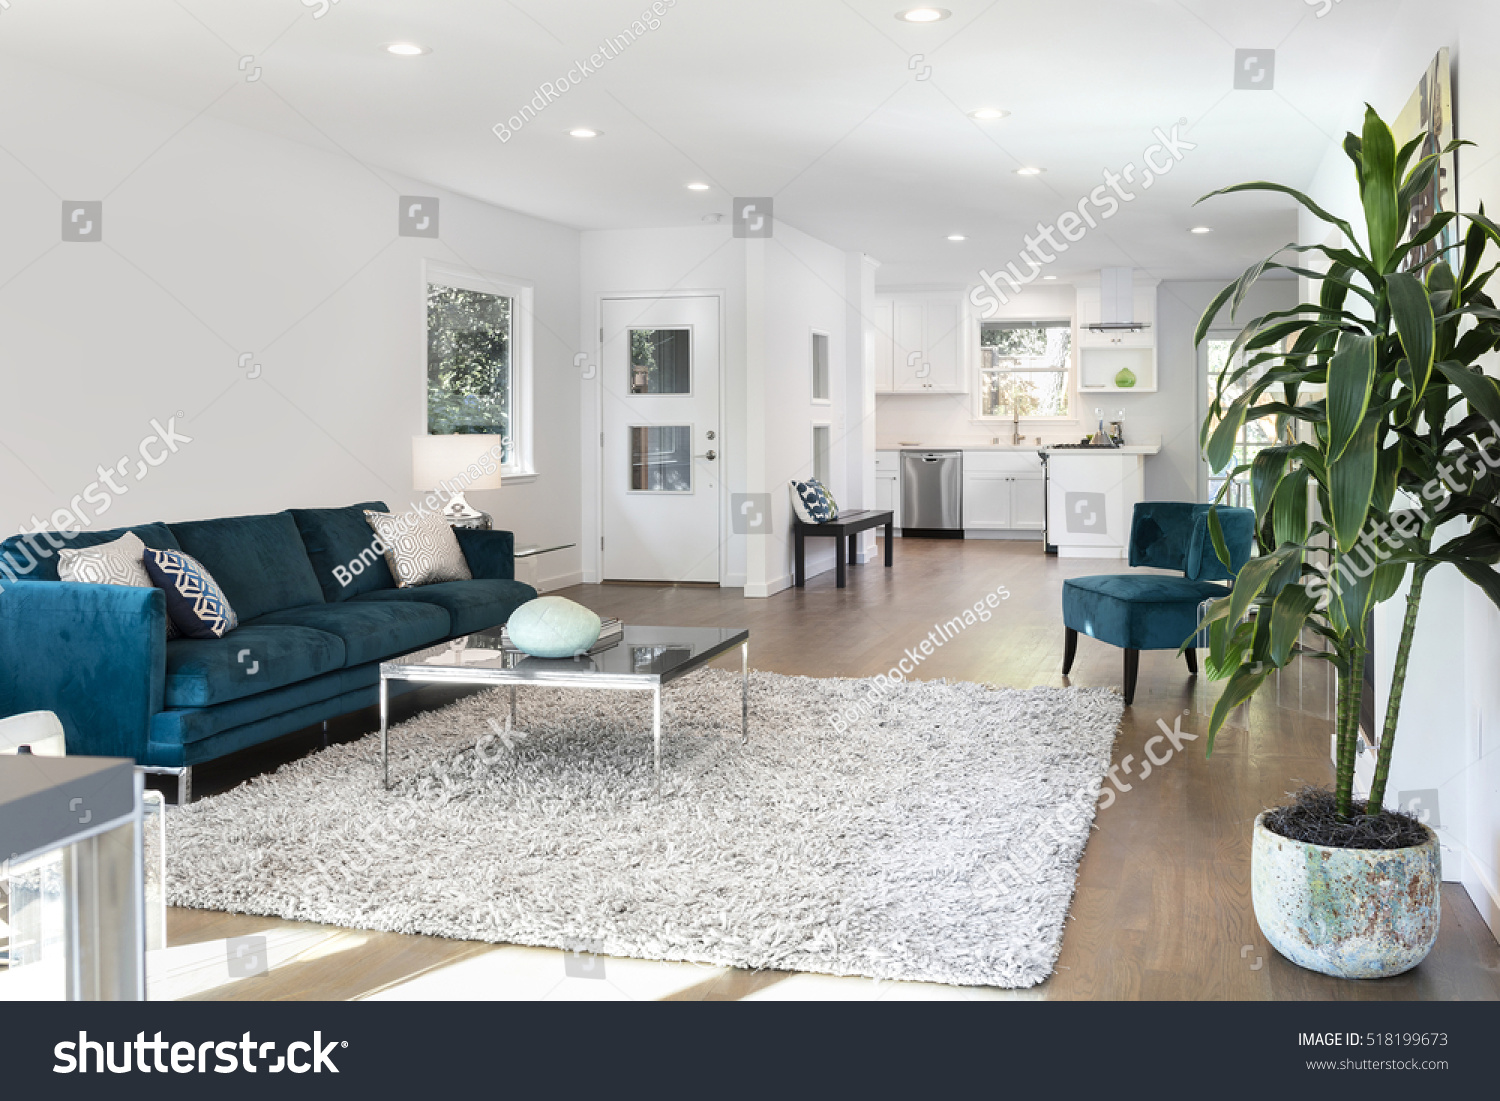 Beautiful Large Living Room Interior With Hardwood Floors, Fluffy Rug And  Designer Furniture. Part 88